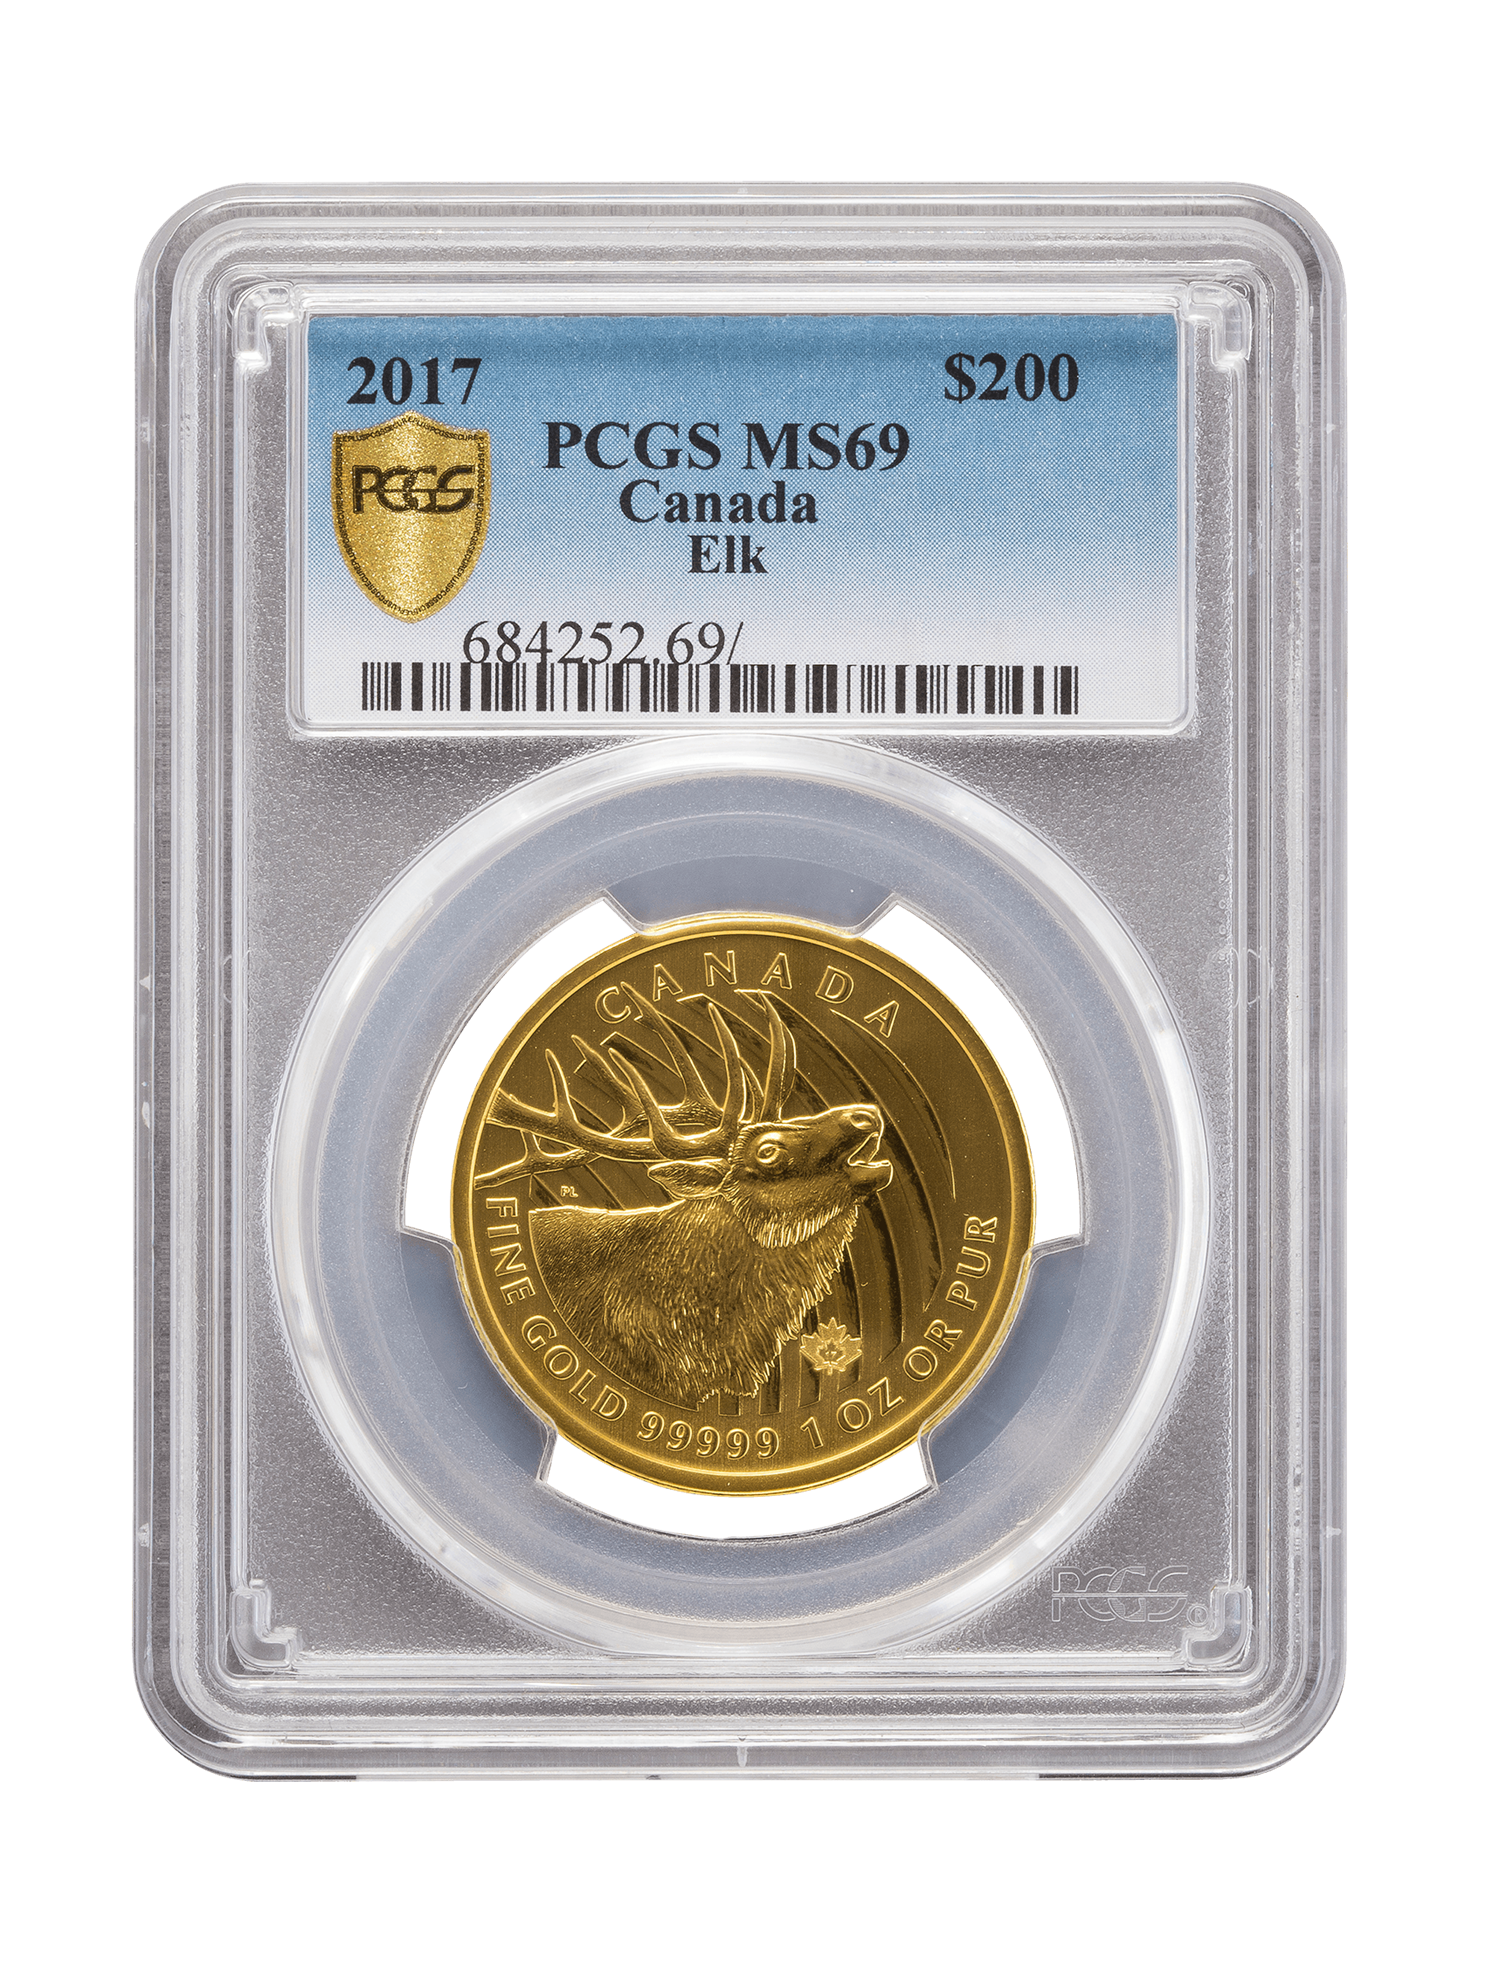 Direct Bullion London S No 1 Bullion Dealer Pcgs Authorised Coin Dealer 2018 1oz Gold Call Of The Wild Golden Eagle Pcgs Ms67 Direct Bullion London Authorised Dealer